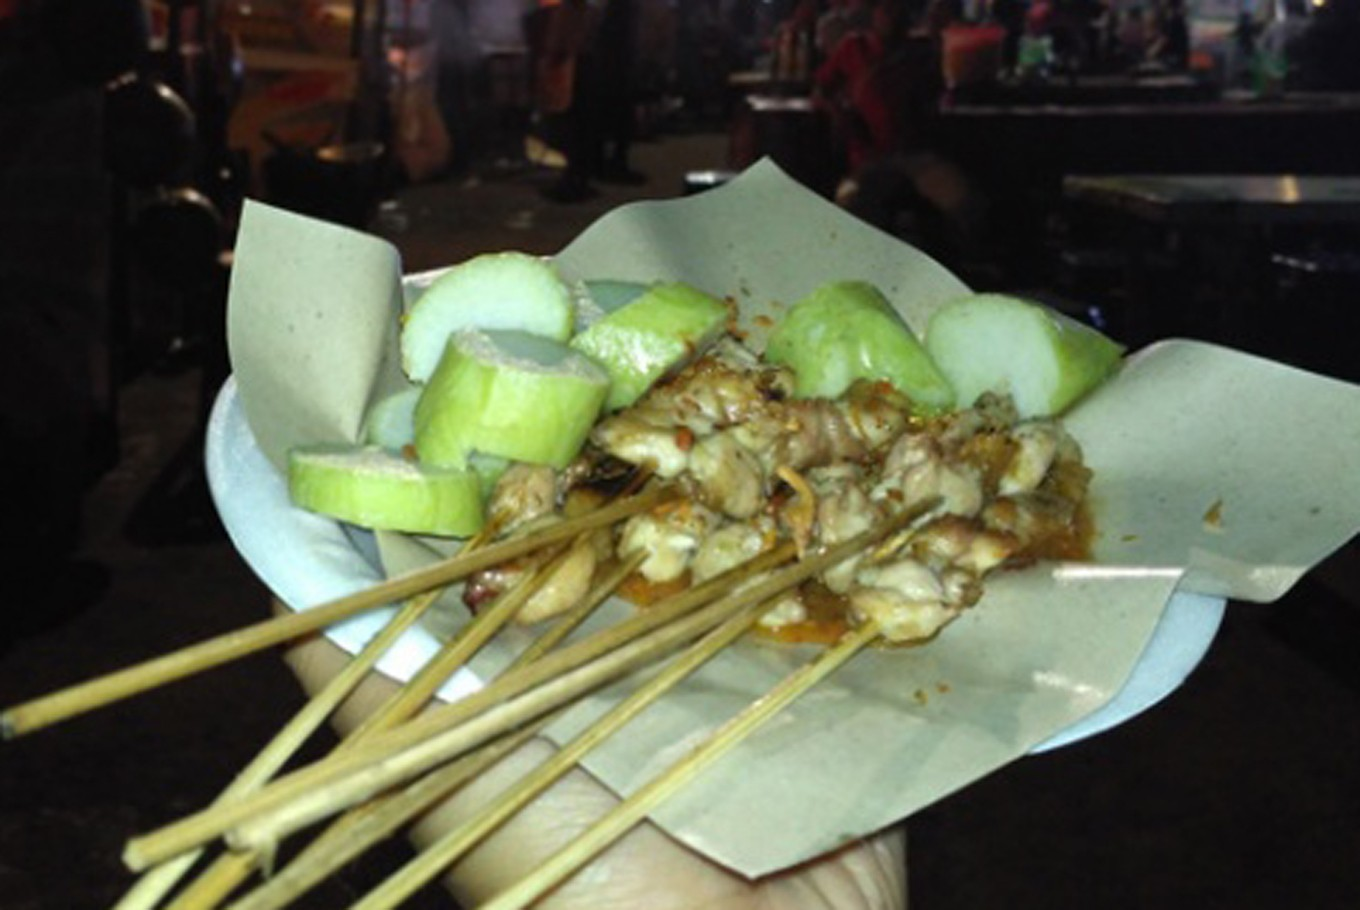 Introducing 'sate taichan,' Jakarta's popular spicy satay dish